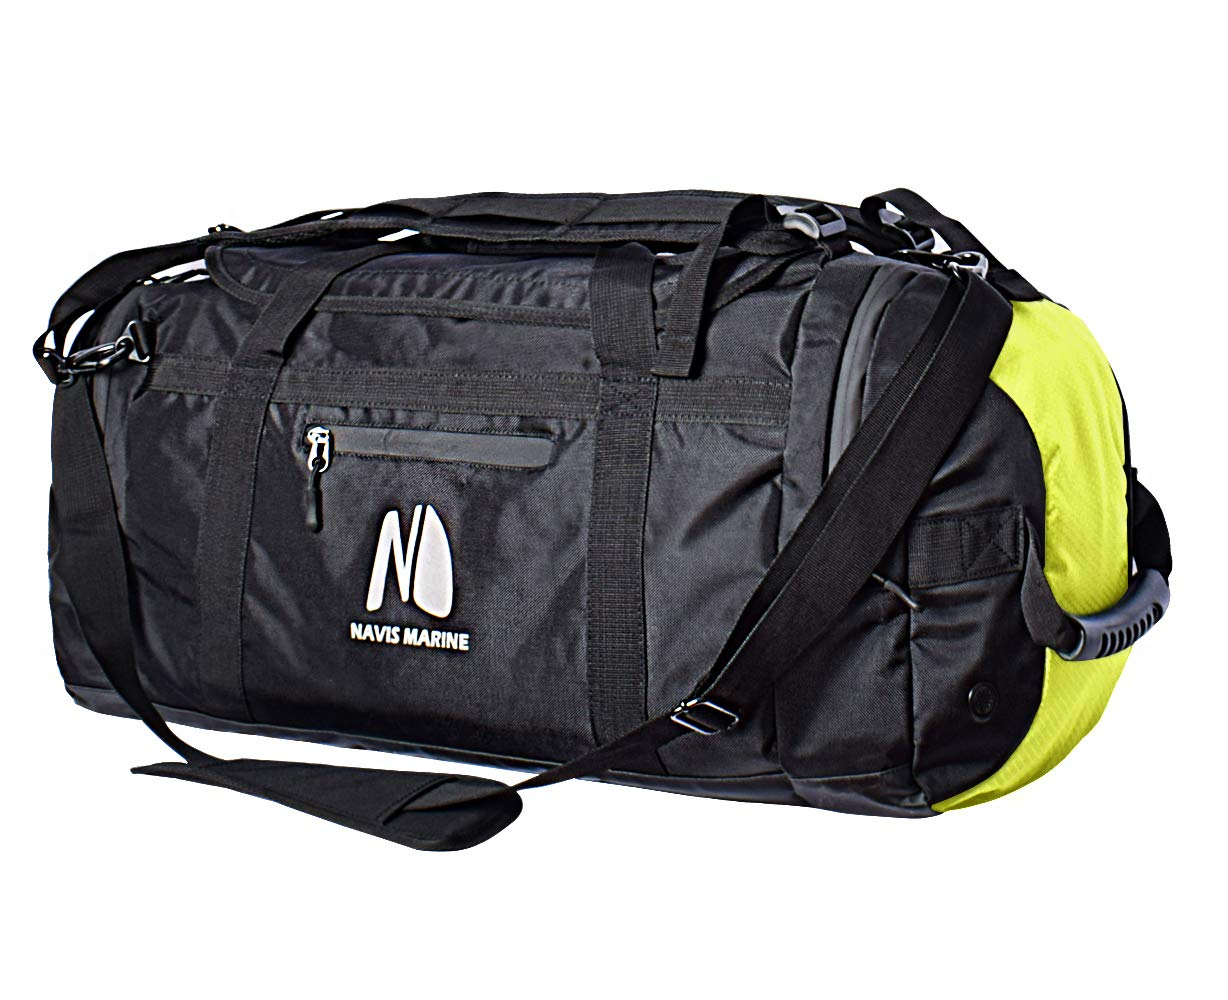 Duffel Dry Bags Waterproof for Sailing Backpack Boating Luggage Team Bag 50-litres (Black/Fluorescent) by Navis Marine